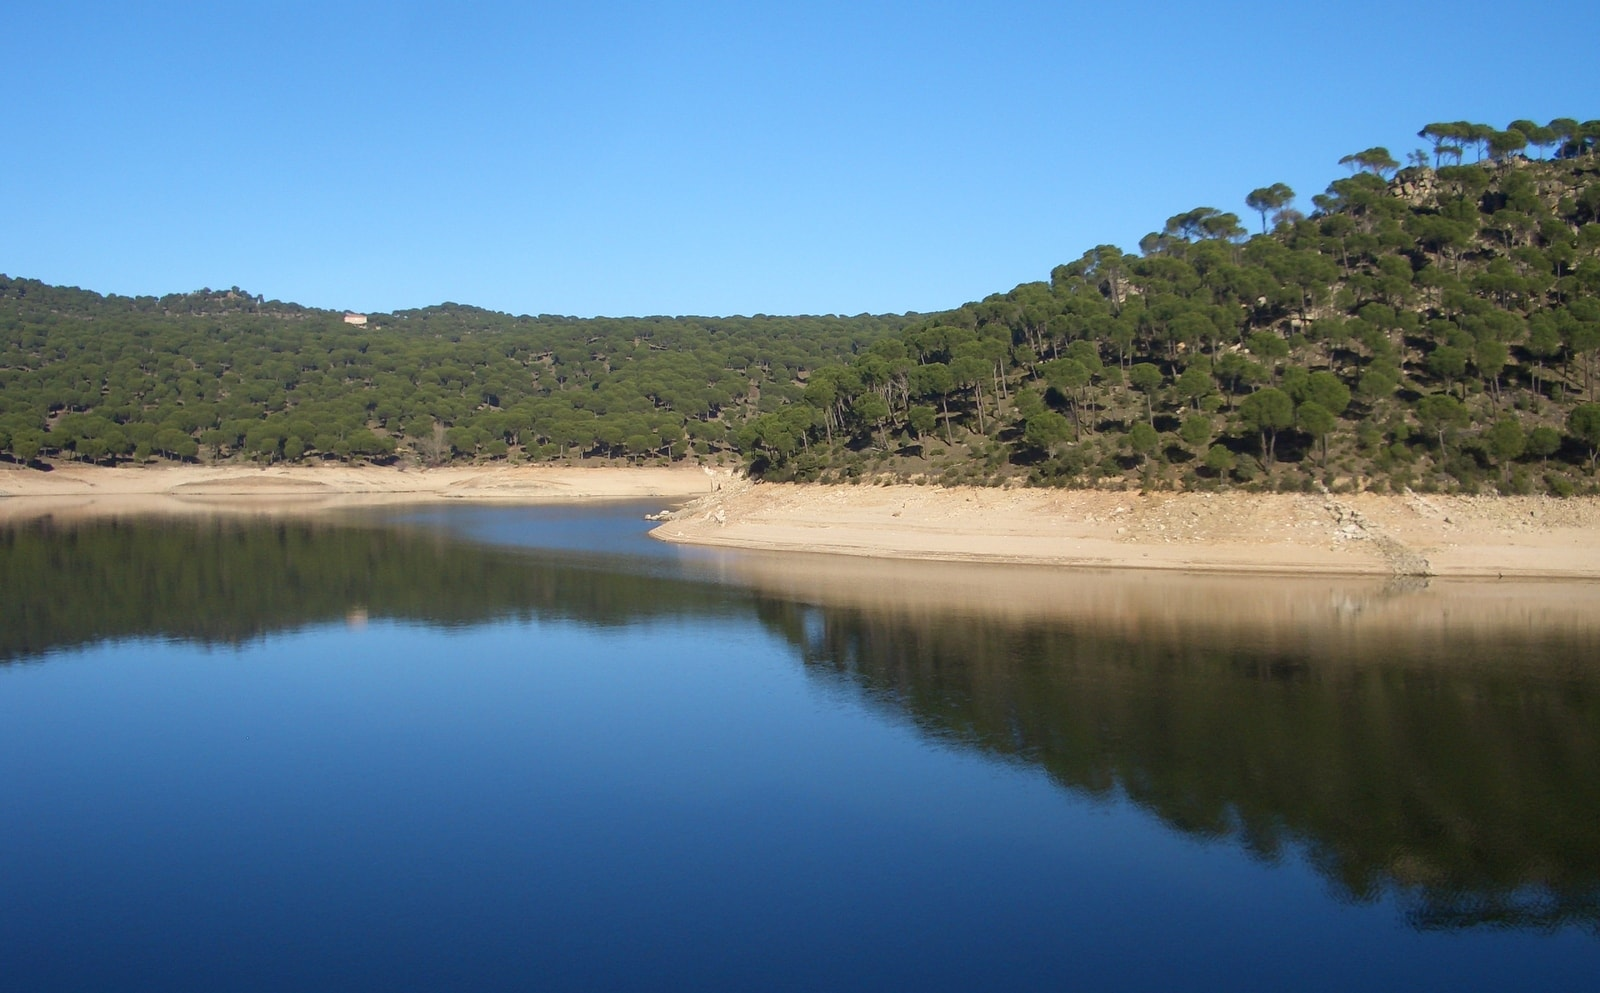 Madrid's beach san juan reservoir